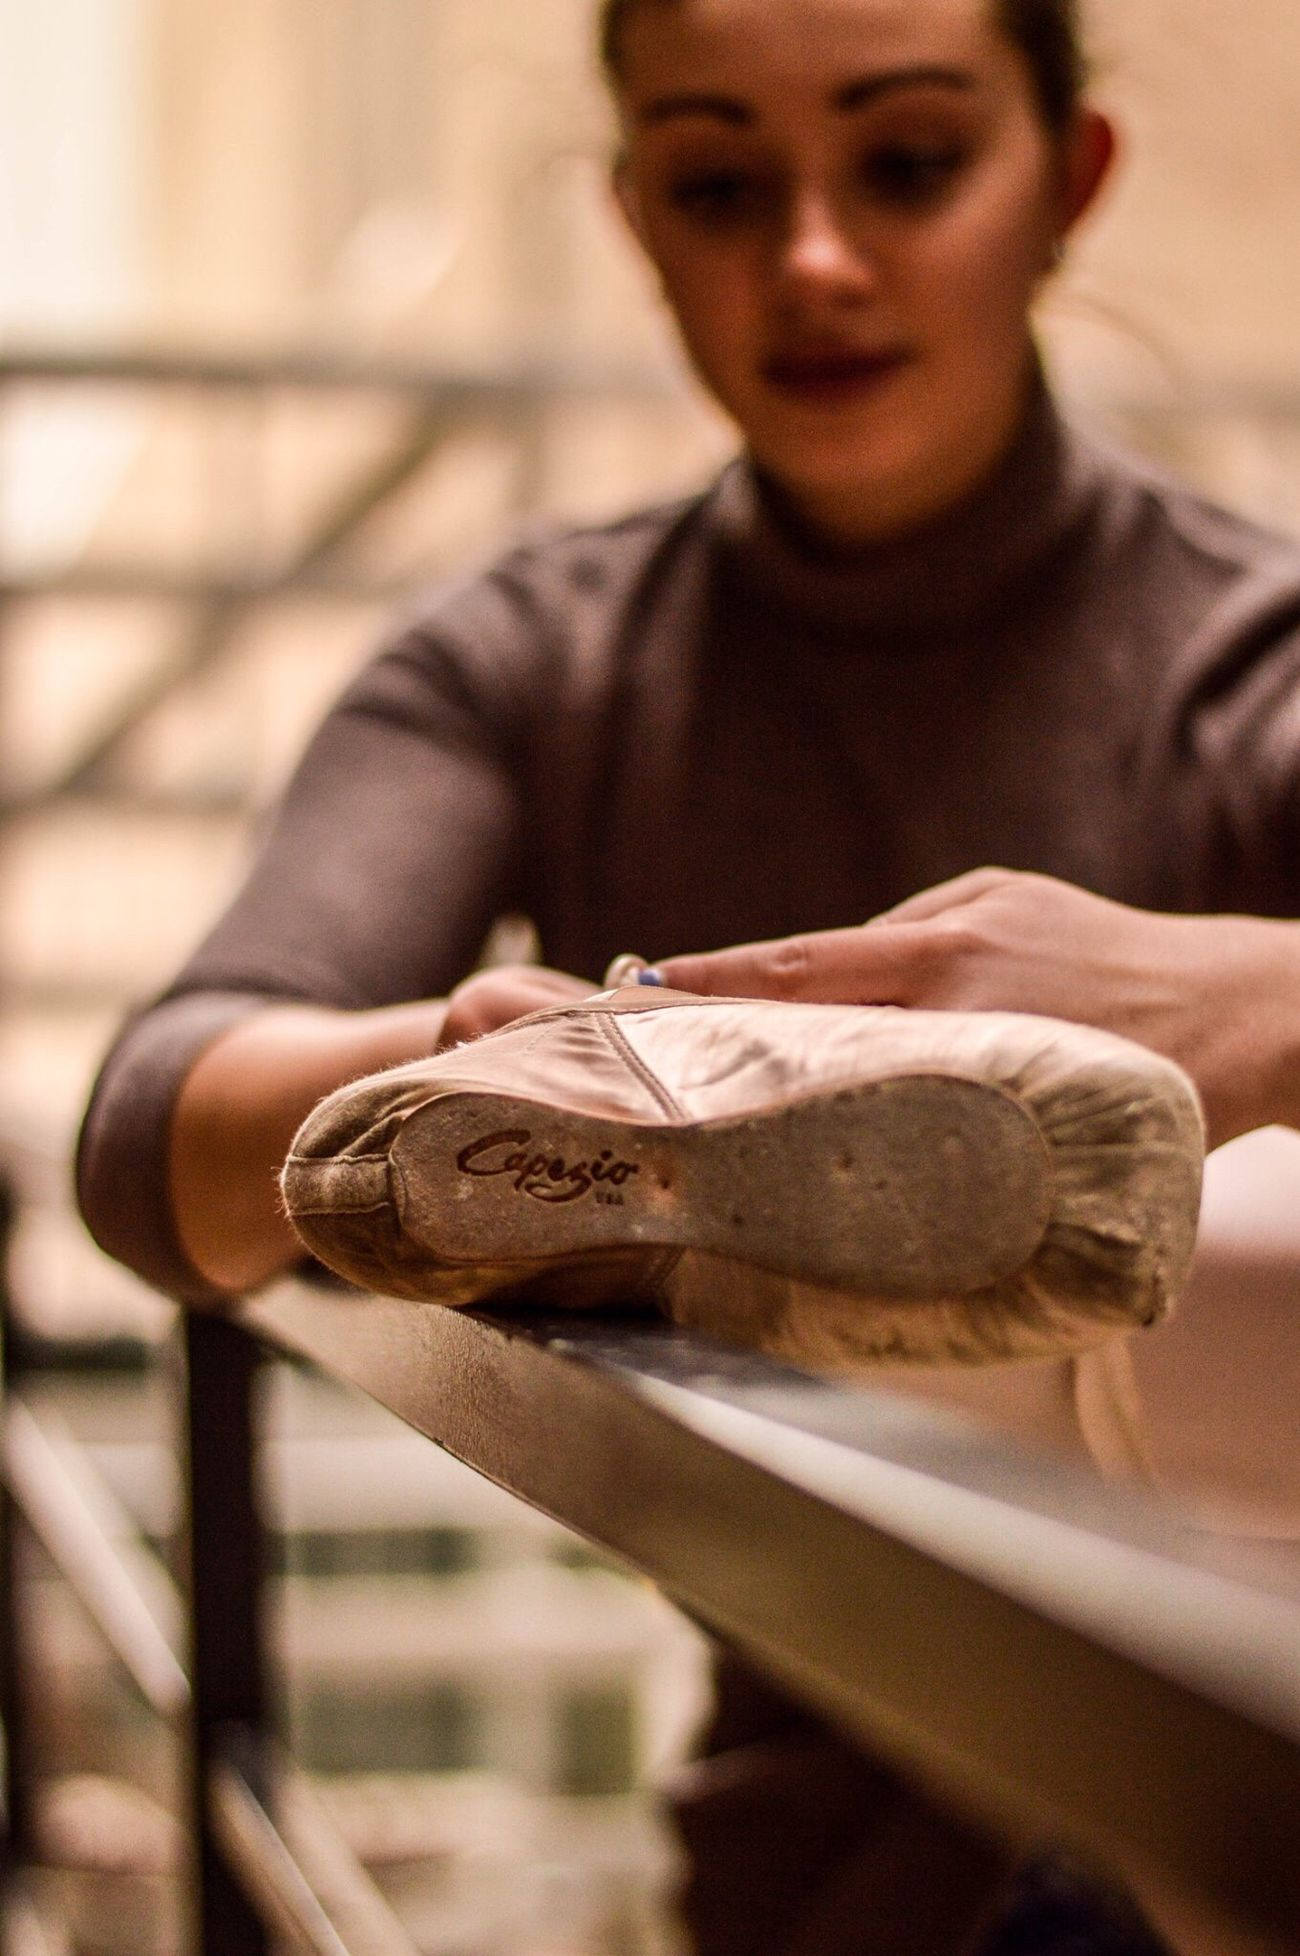 Human Hand One Person Focus On Foreground Industry Human Body Part Young Adult Indoors  Social Issues Day Close-up People Adult Ballet Dancer Ballet Shoes